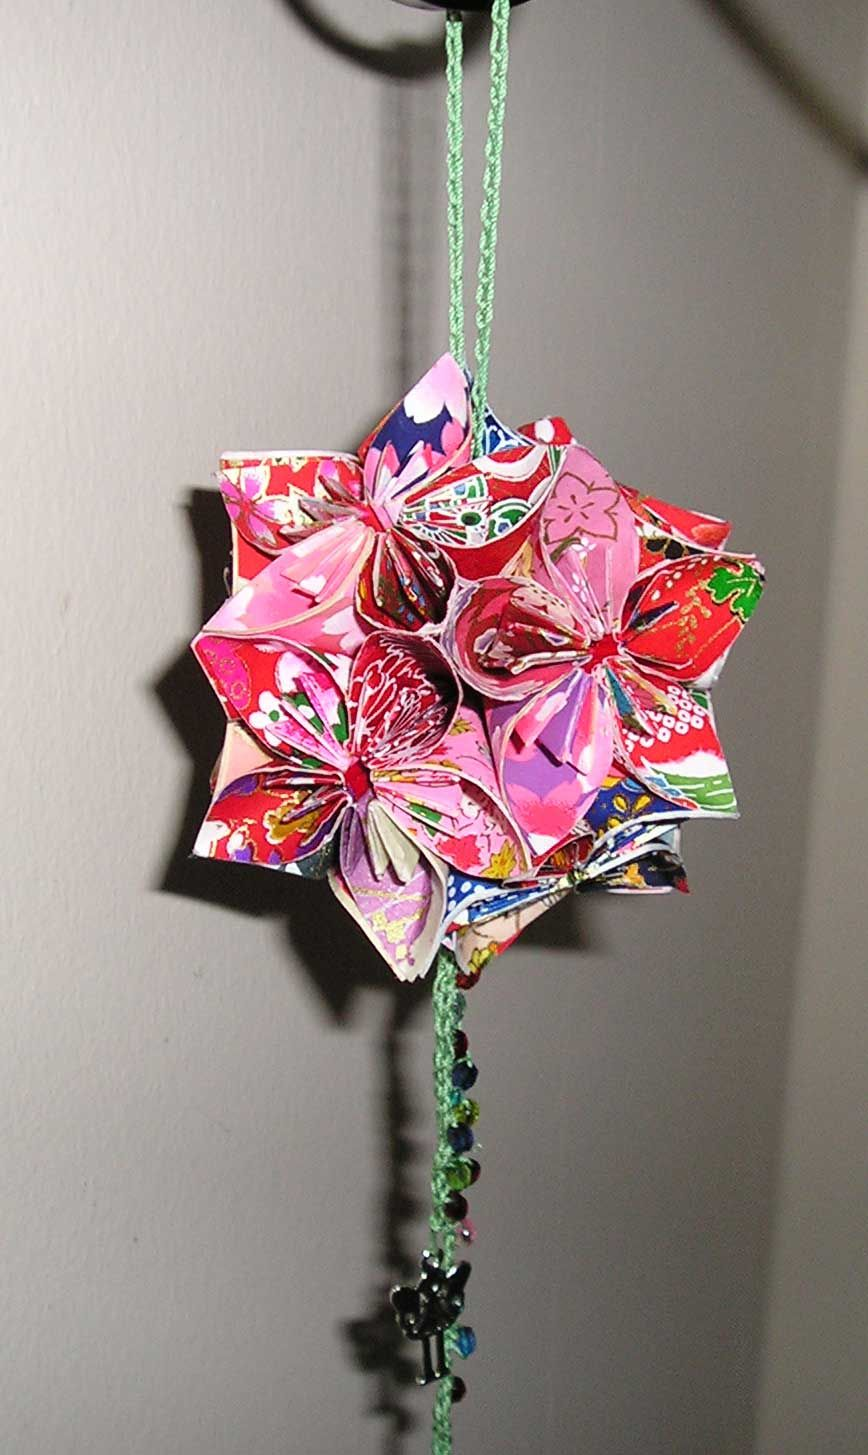 Origami Flower Ball Or As My Husband Calls It A Death Star I